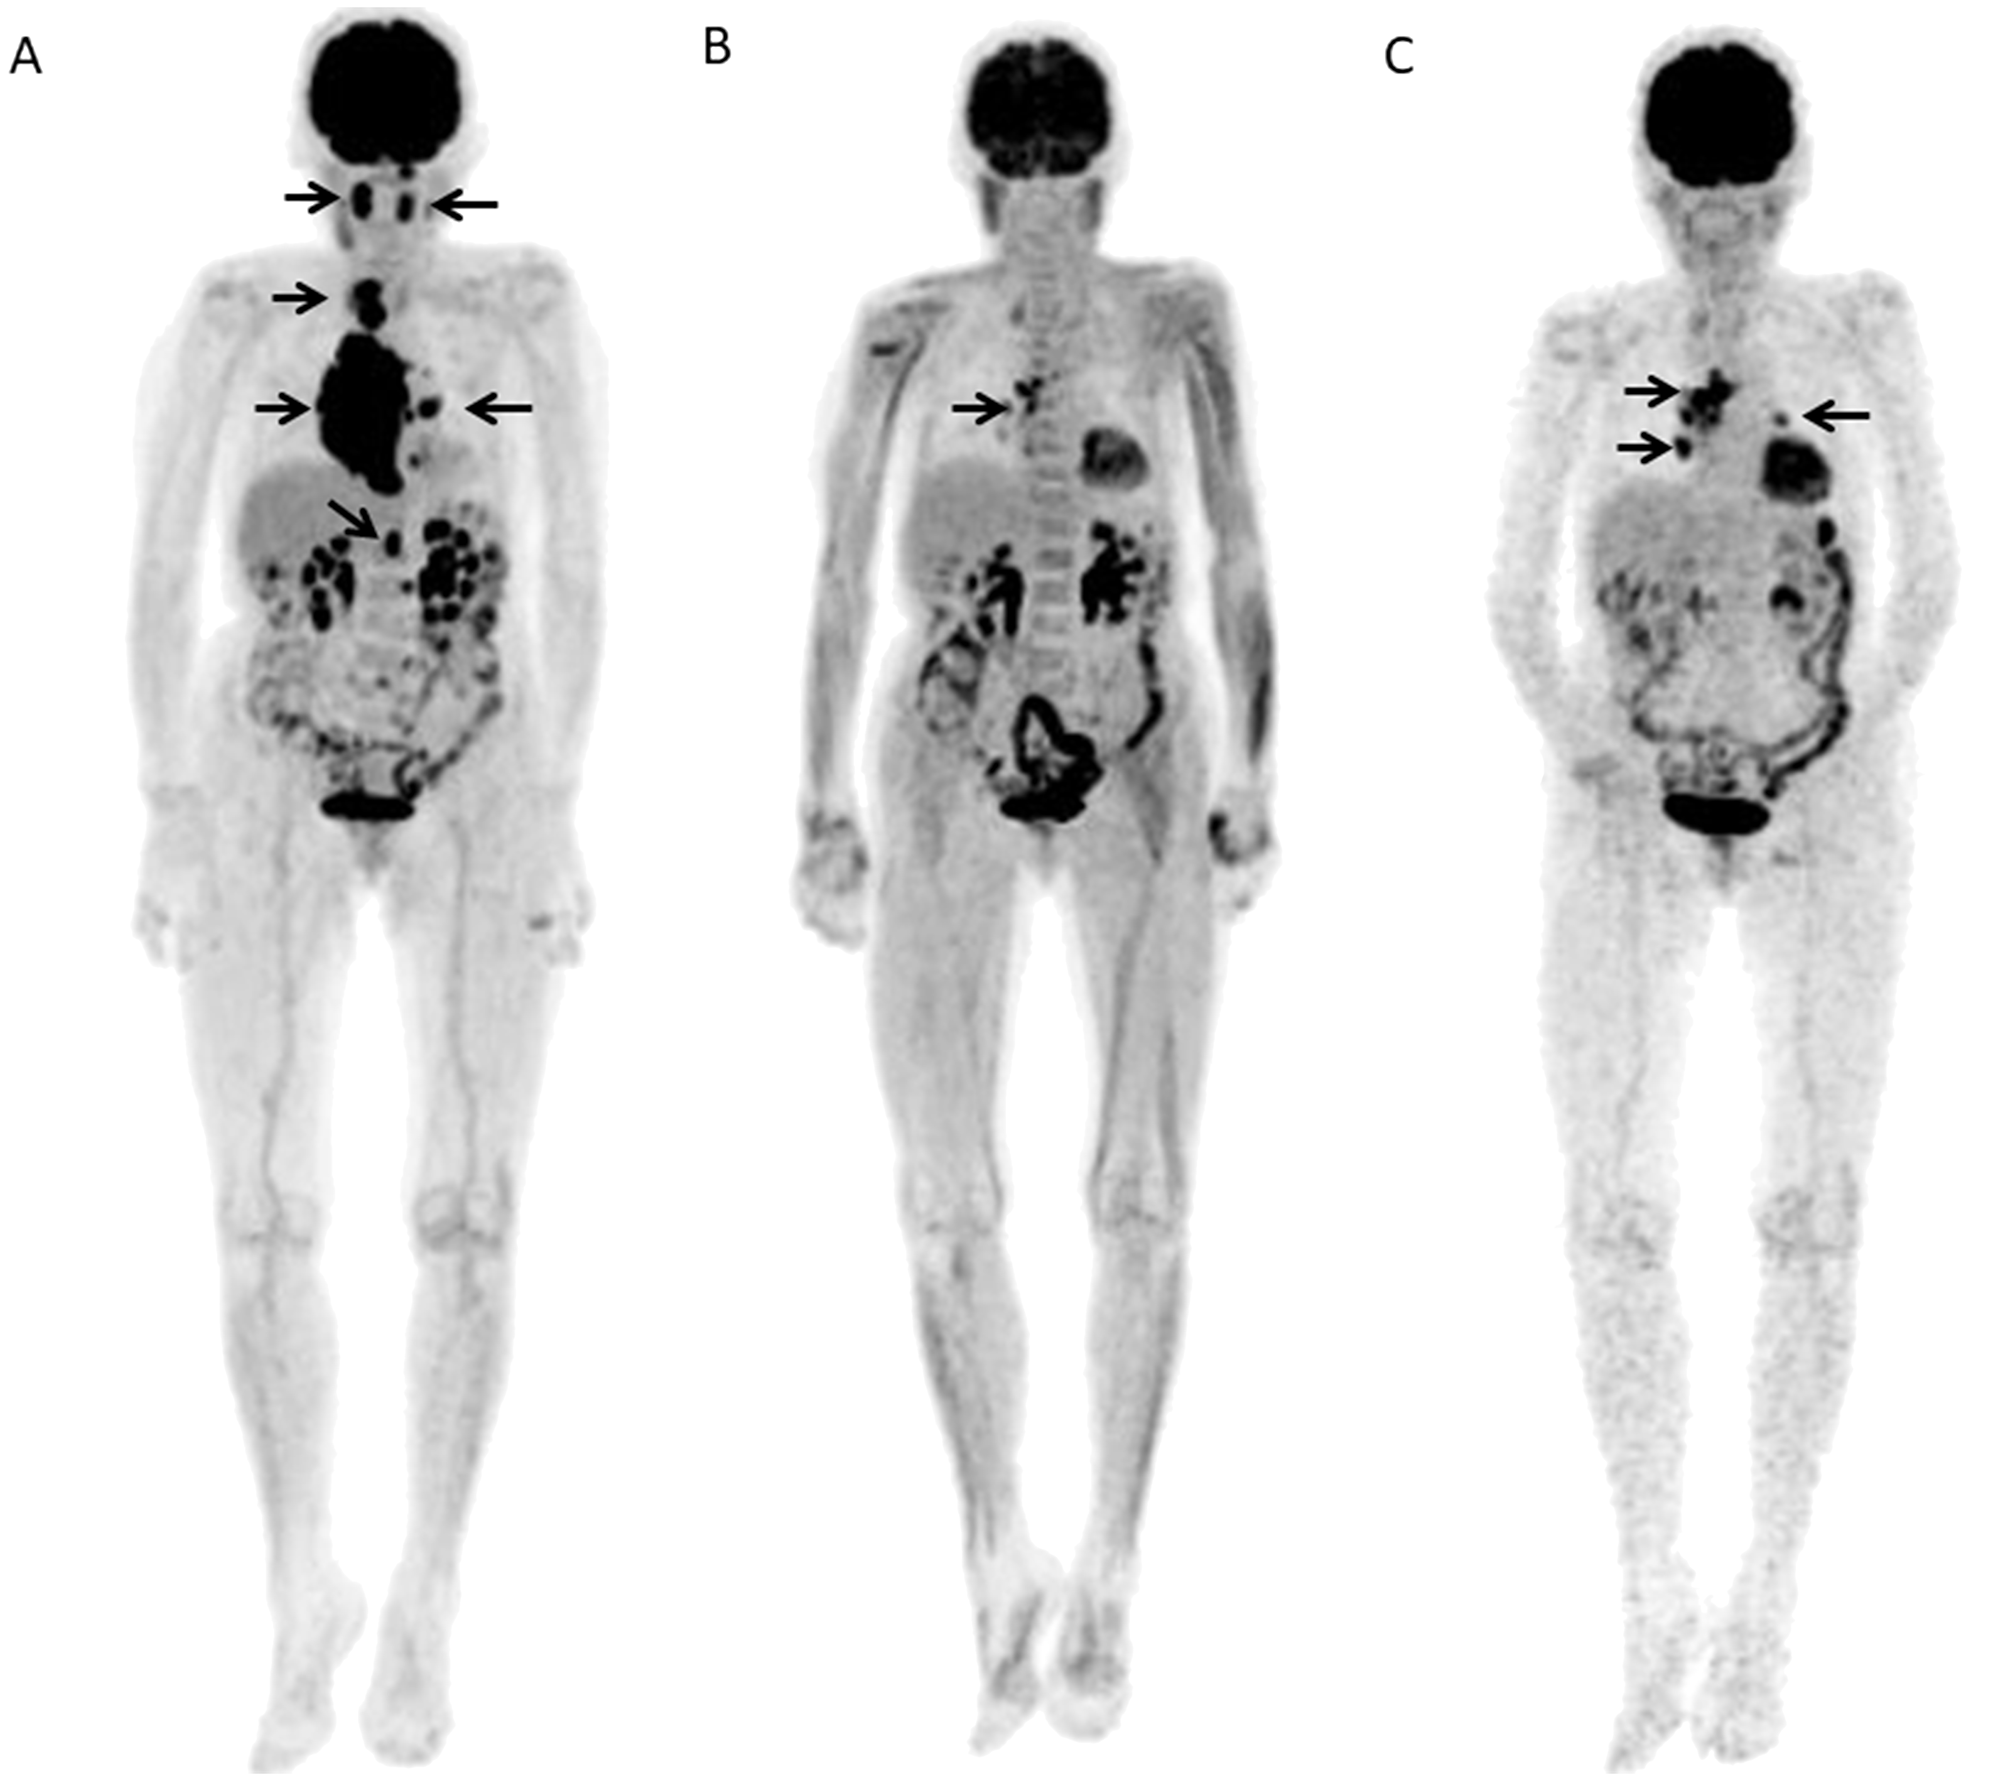 A 80-year-old female with DLBCL received 6 R-CHOP courses and then showed further progression at 0.41 years after the end of chemotherapy.